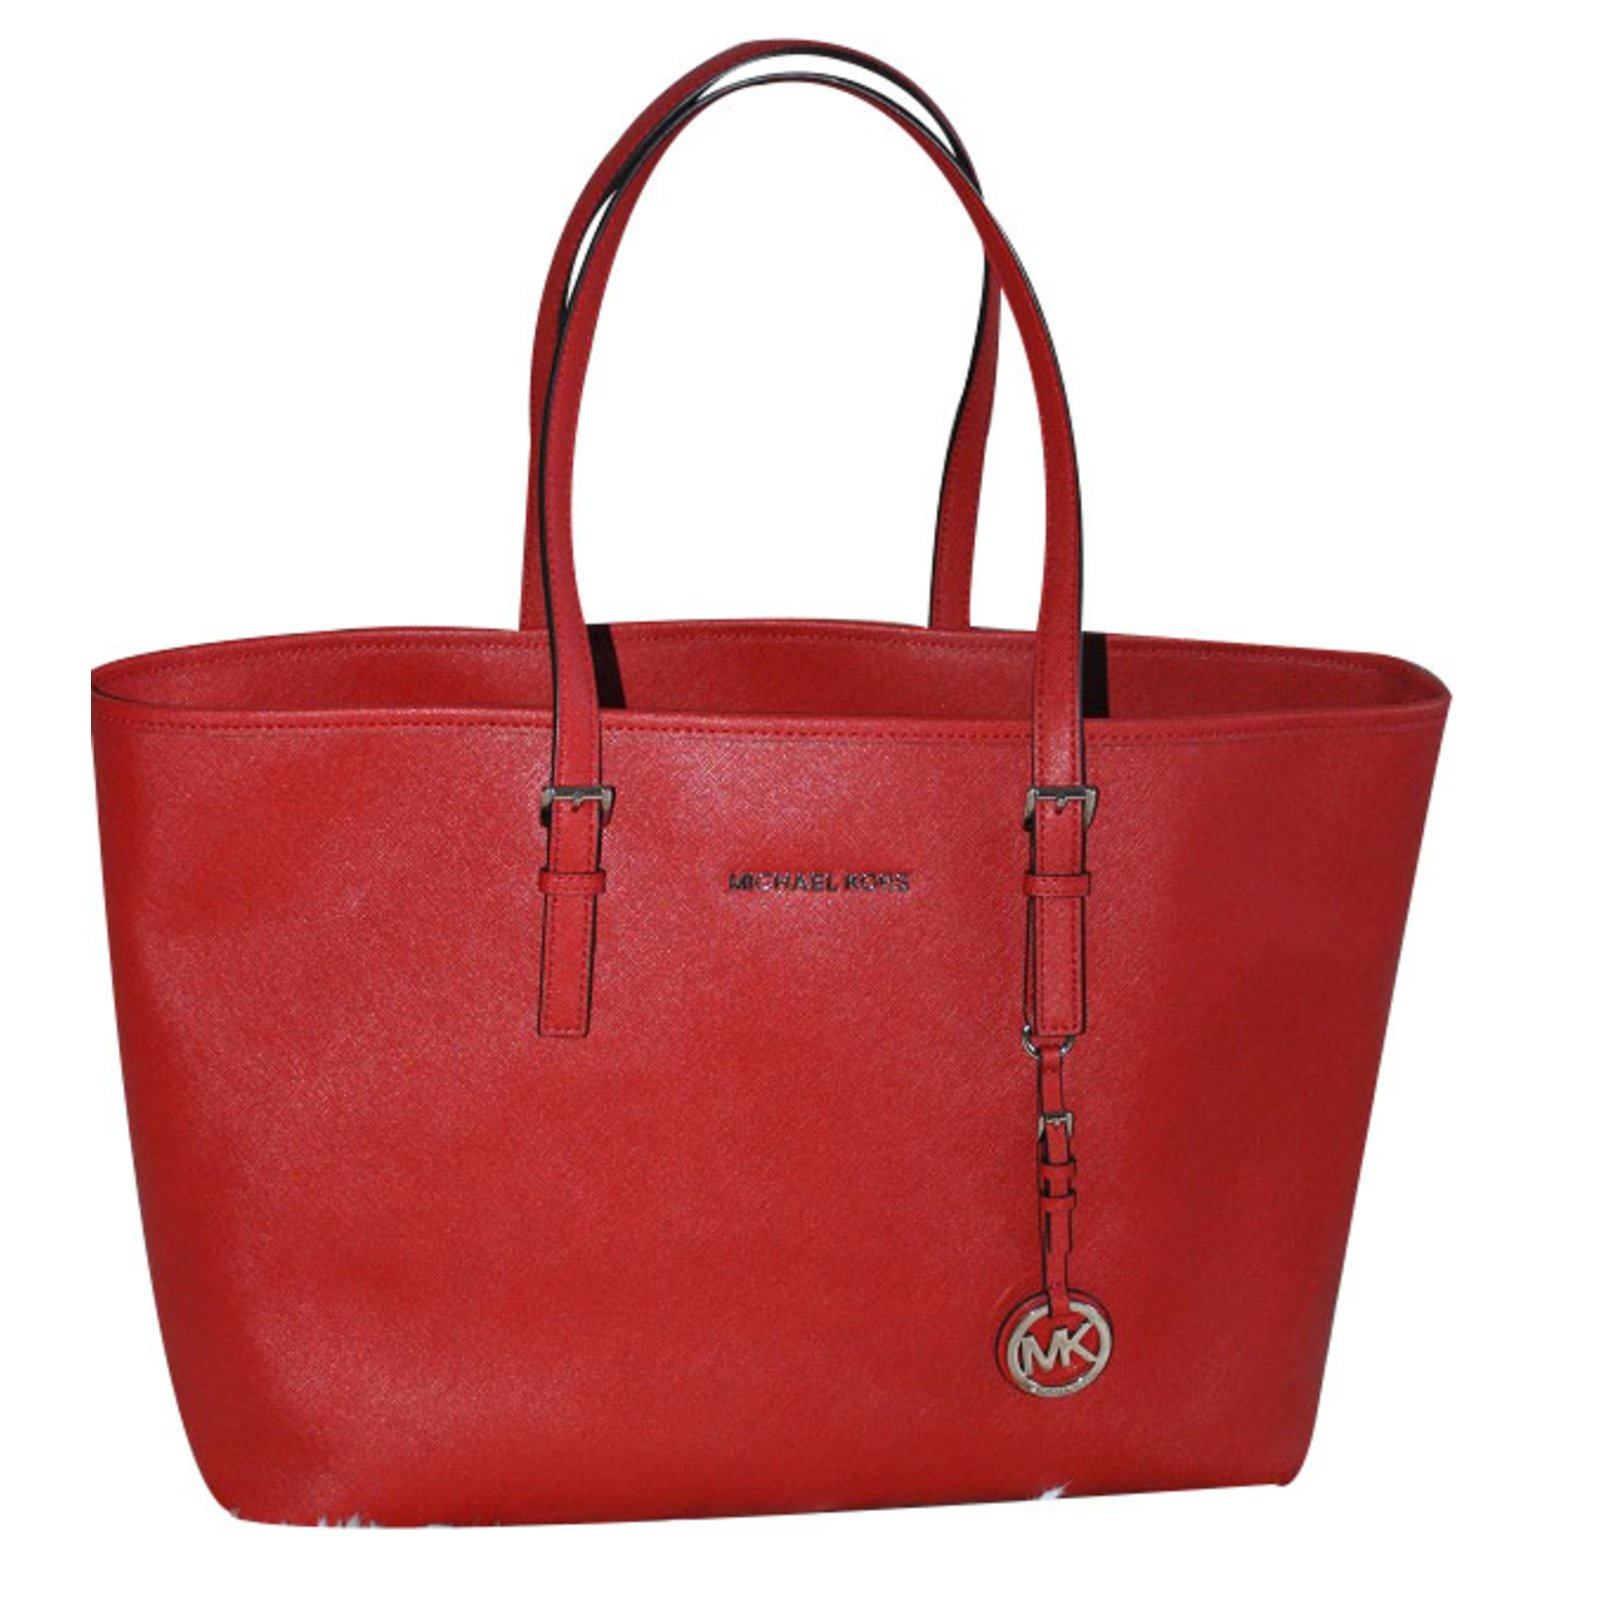 8920b308fb Cabas Michael Kors Sac cabas Jet set travel Michael Kors grand modèle Cuir  Rouge ref.